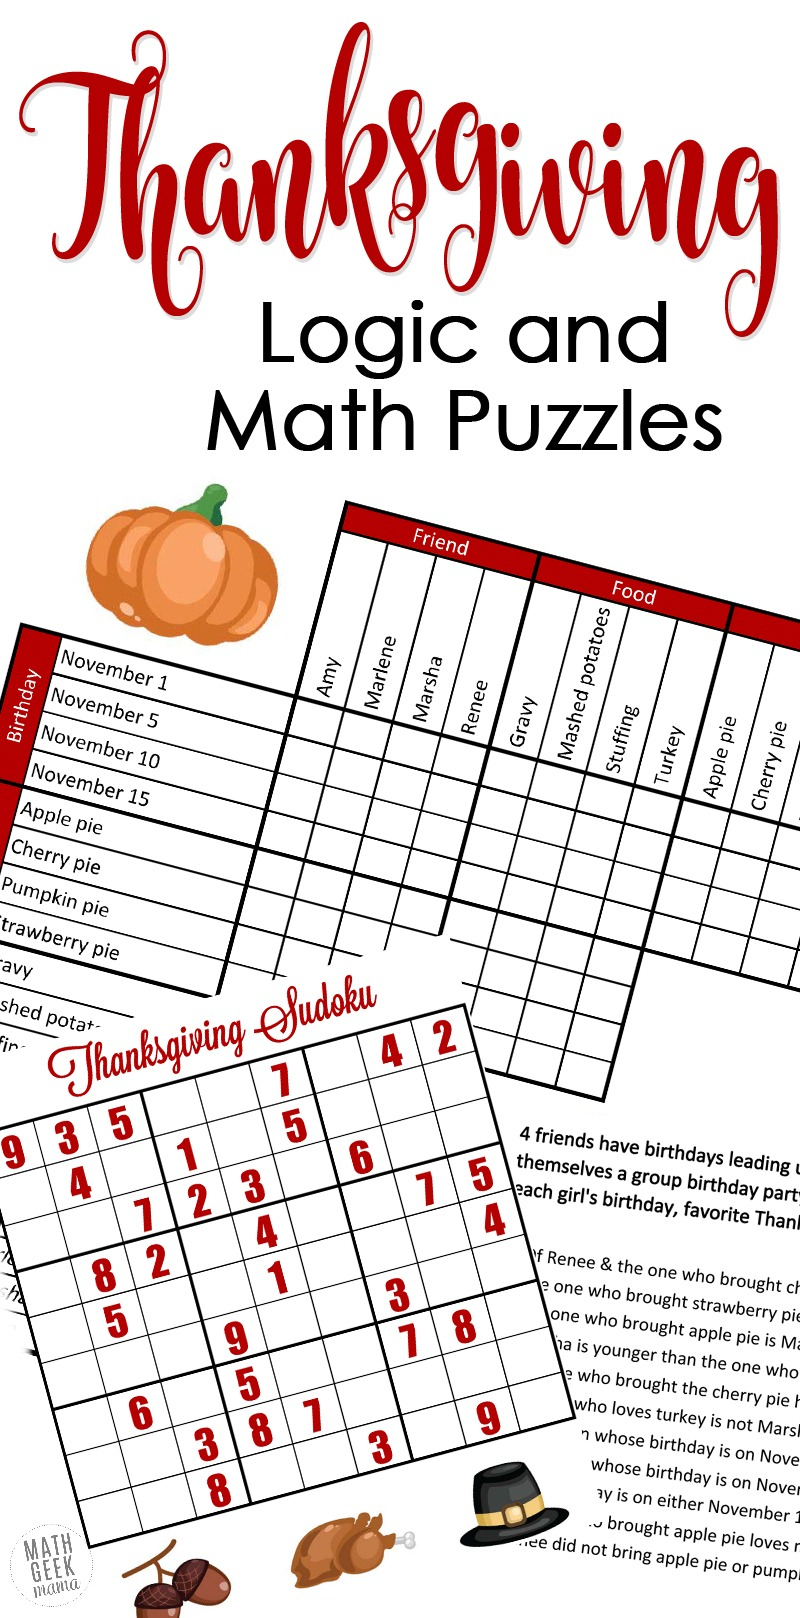 Free} Fun Thanksgiving Math Puzzles For Older Kids - Printable Thanksgiving Puzzle